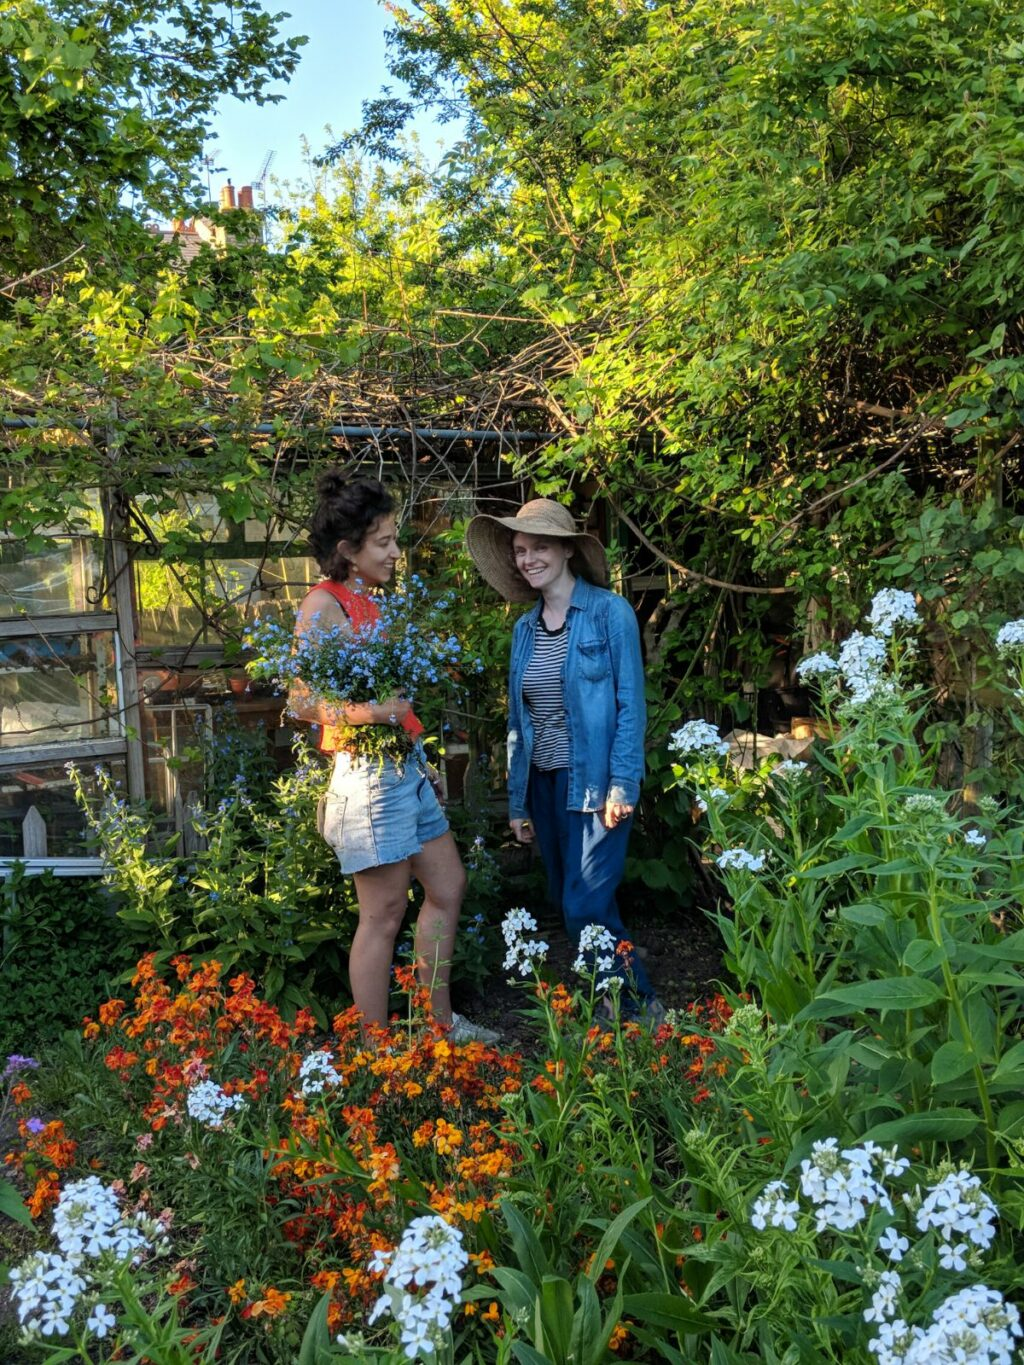 Marianne and Camila of Wolves Lane Flower Company almost lost in the abundant green growth of orange wallflowers, white sweet rocket and climbing honeysuckle all around them.